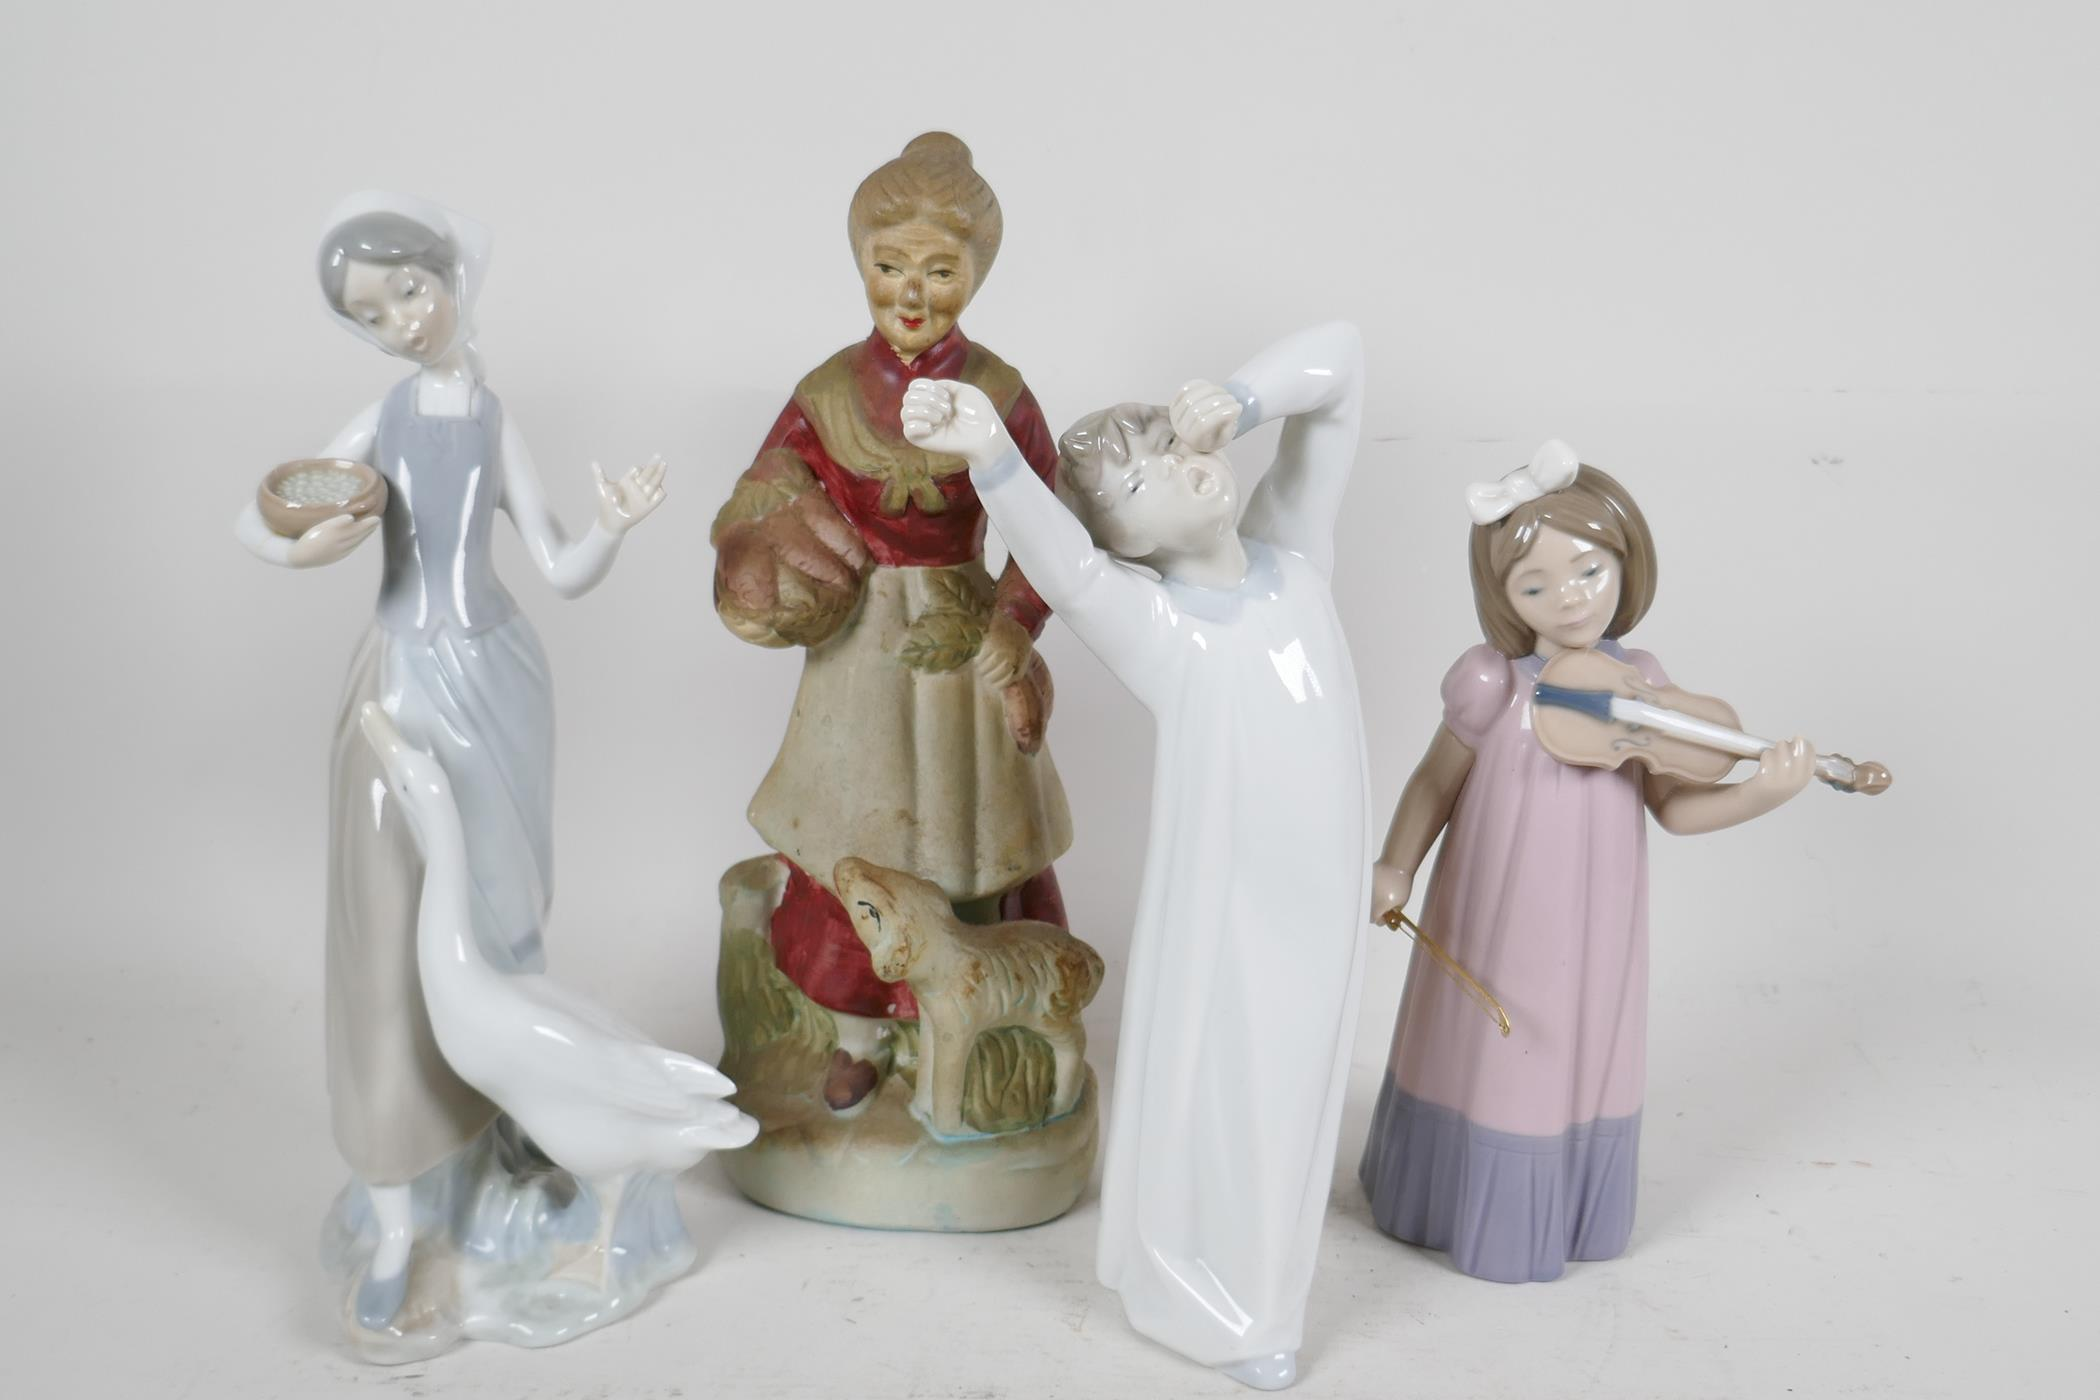 Two Lladro figures, sleepy boy and woman with geese (missing finger), a Nao Daisia figure of a